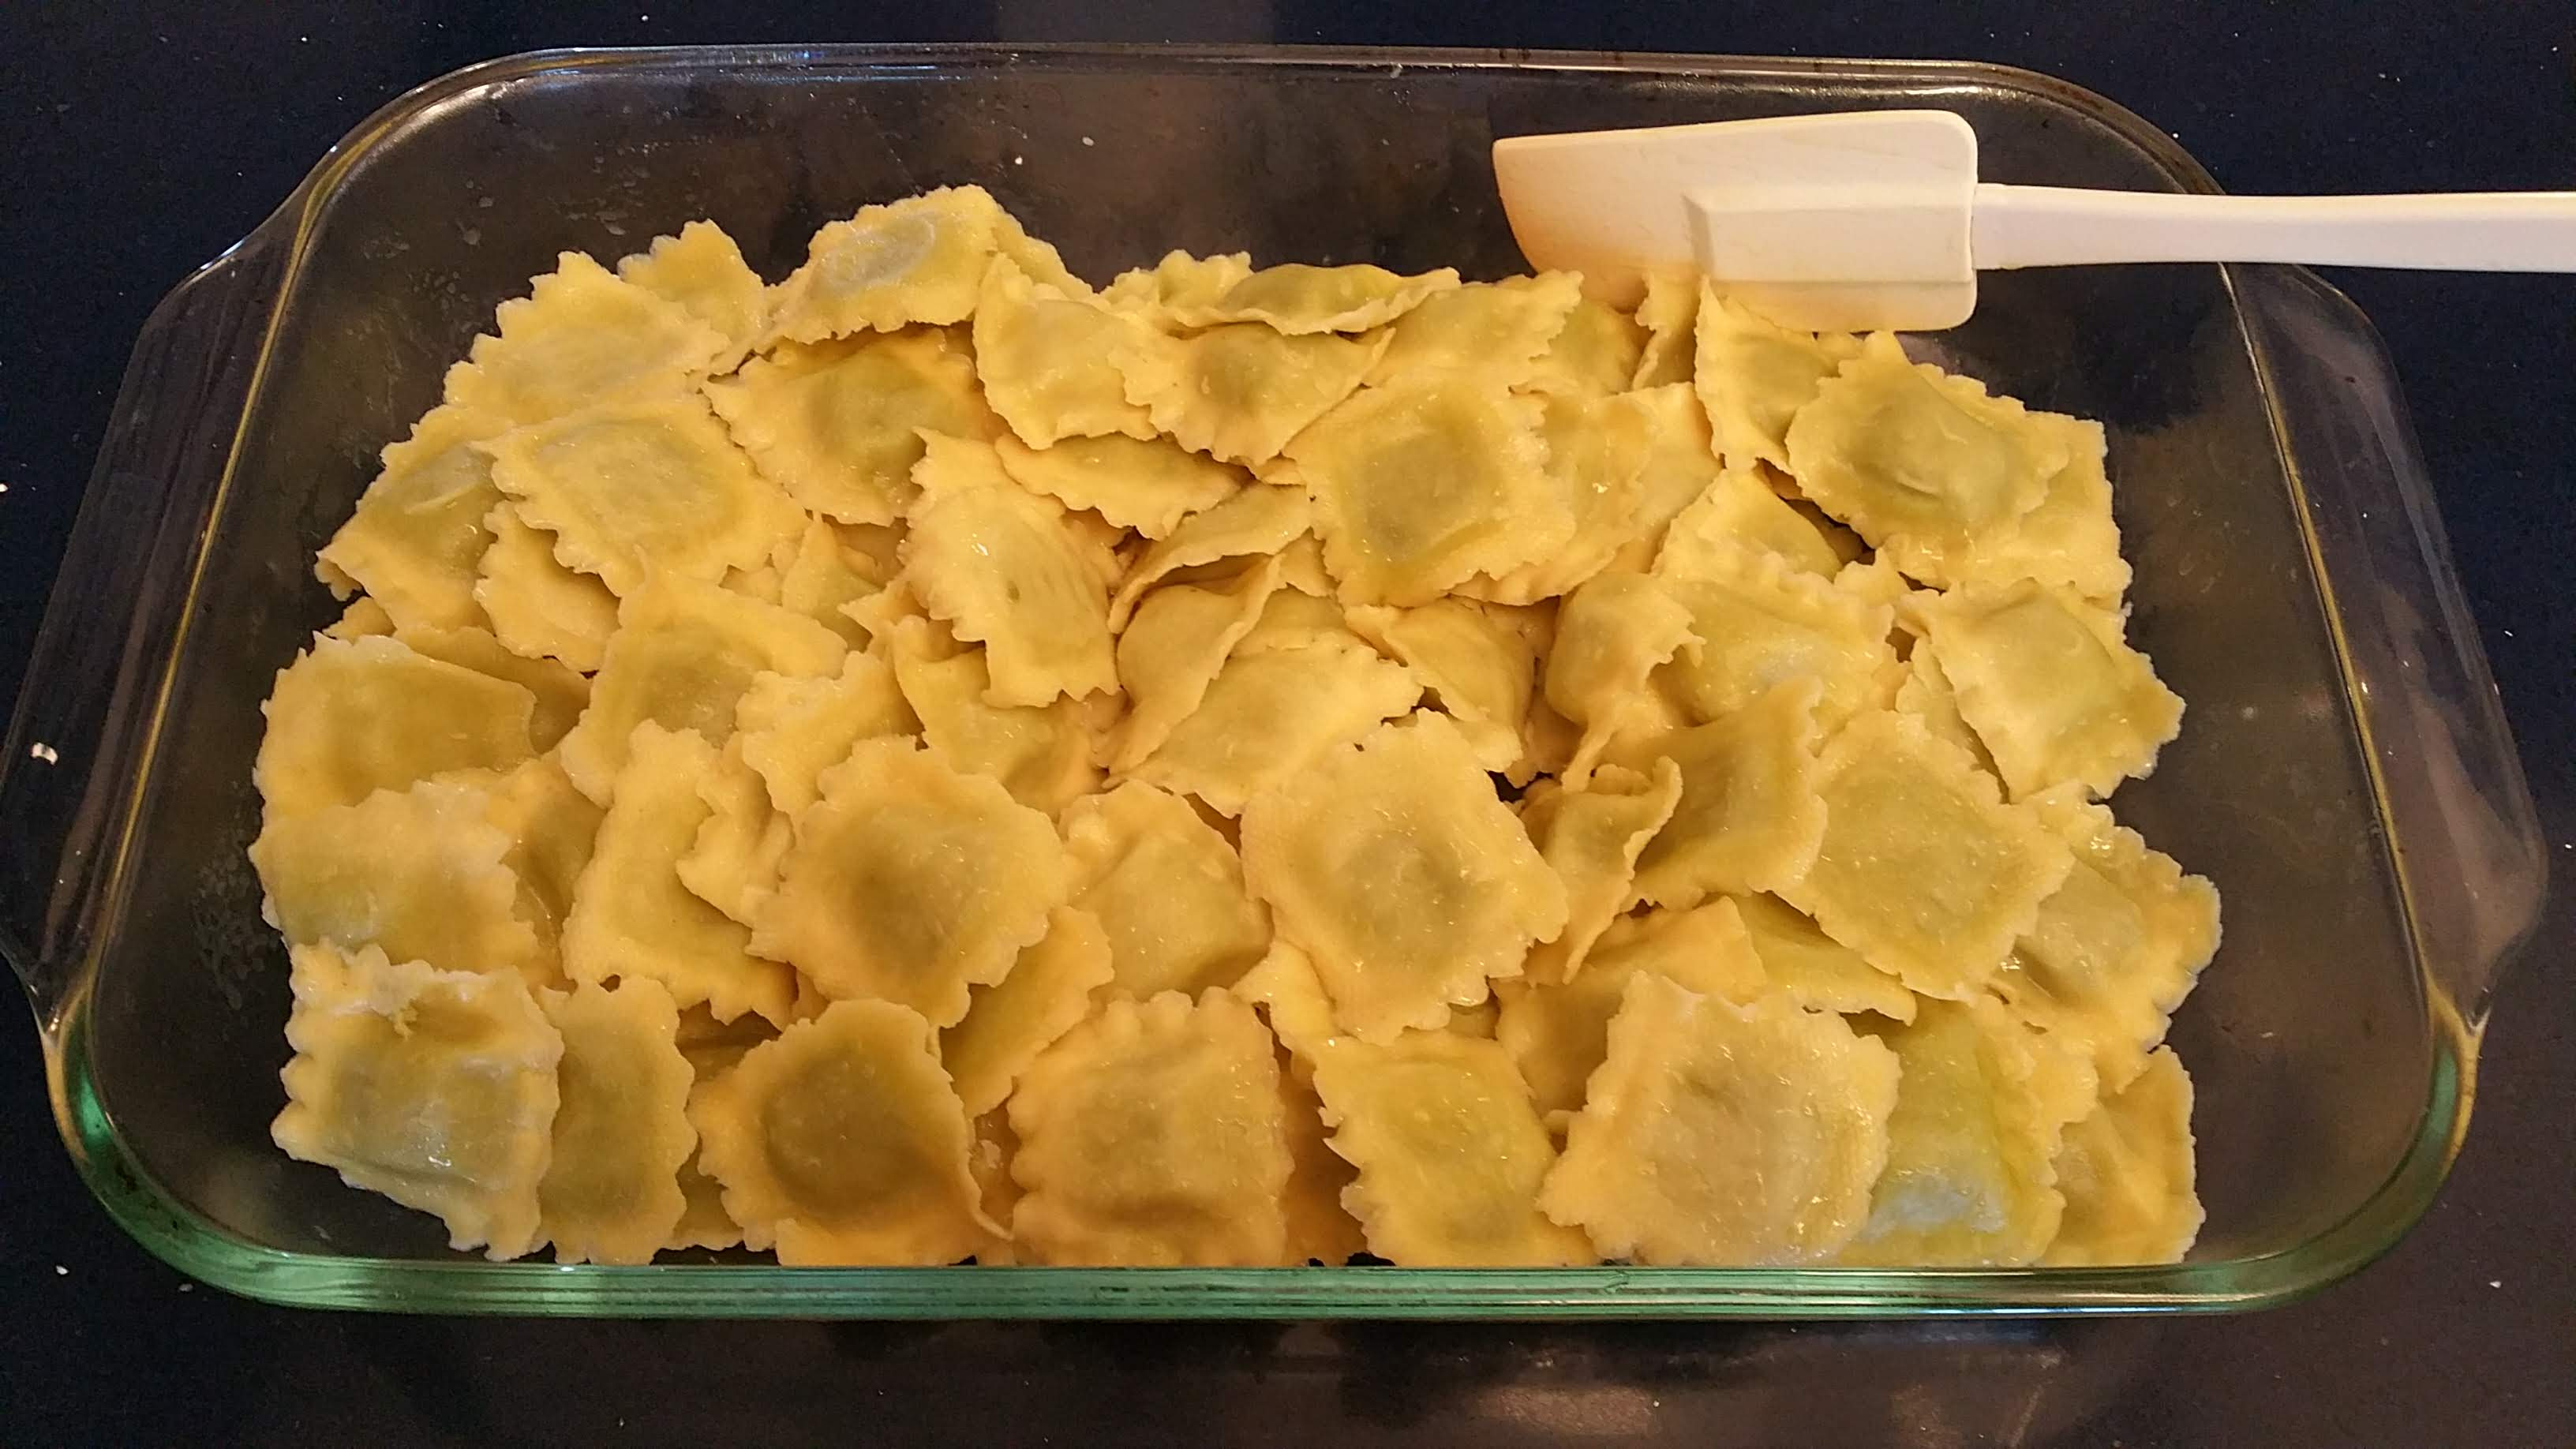 Placing the Ravioli in an Oiled Baking Dish